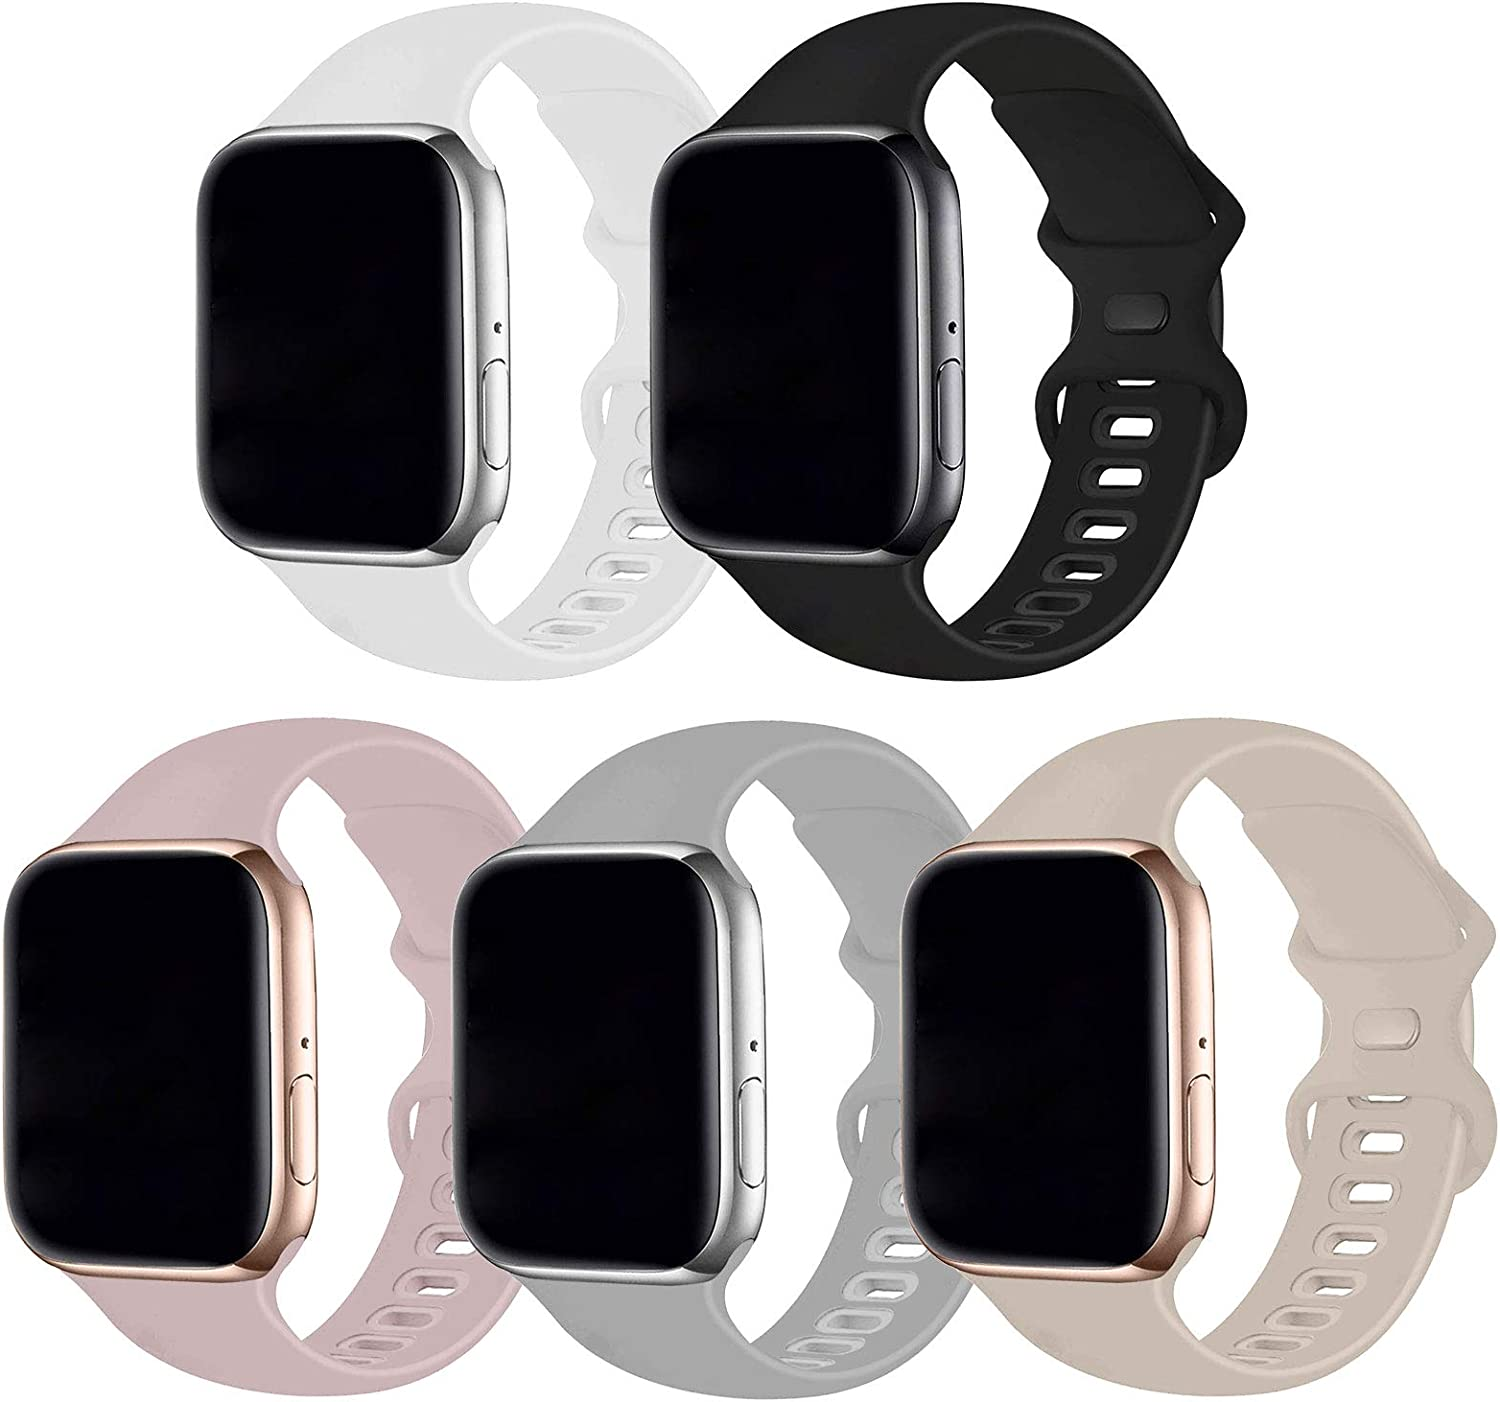 Bifeiyo 5 Pack Compatible with Apple Watch Band 38mm 40mm SM,Soft Silicone Sport Replacement Straps Compatible for iWatch Series6/5/4/3/2/1/SE(Pink Sand/Black/White/Fog/Stone)